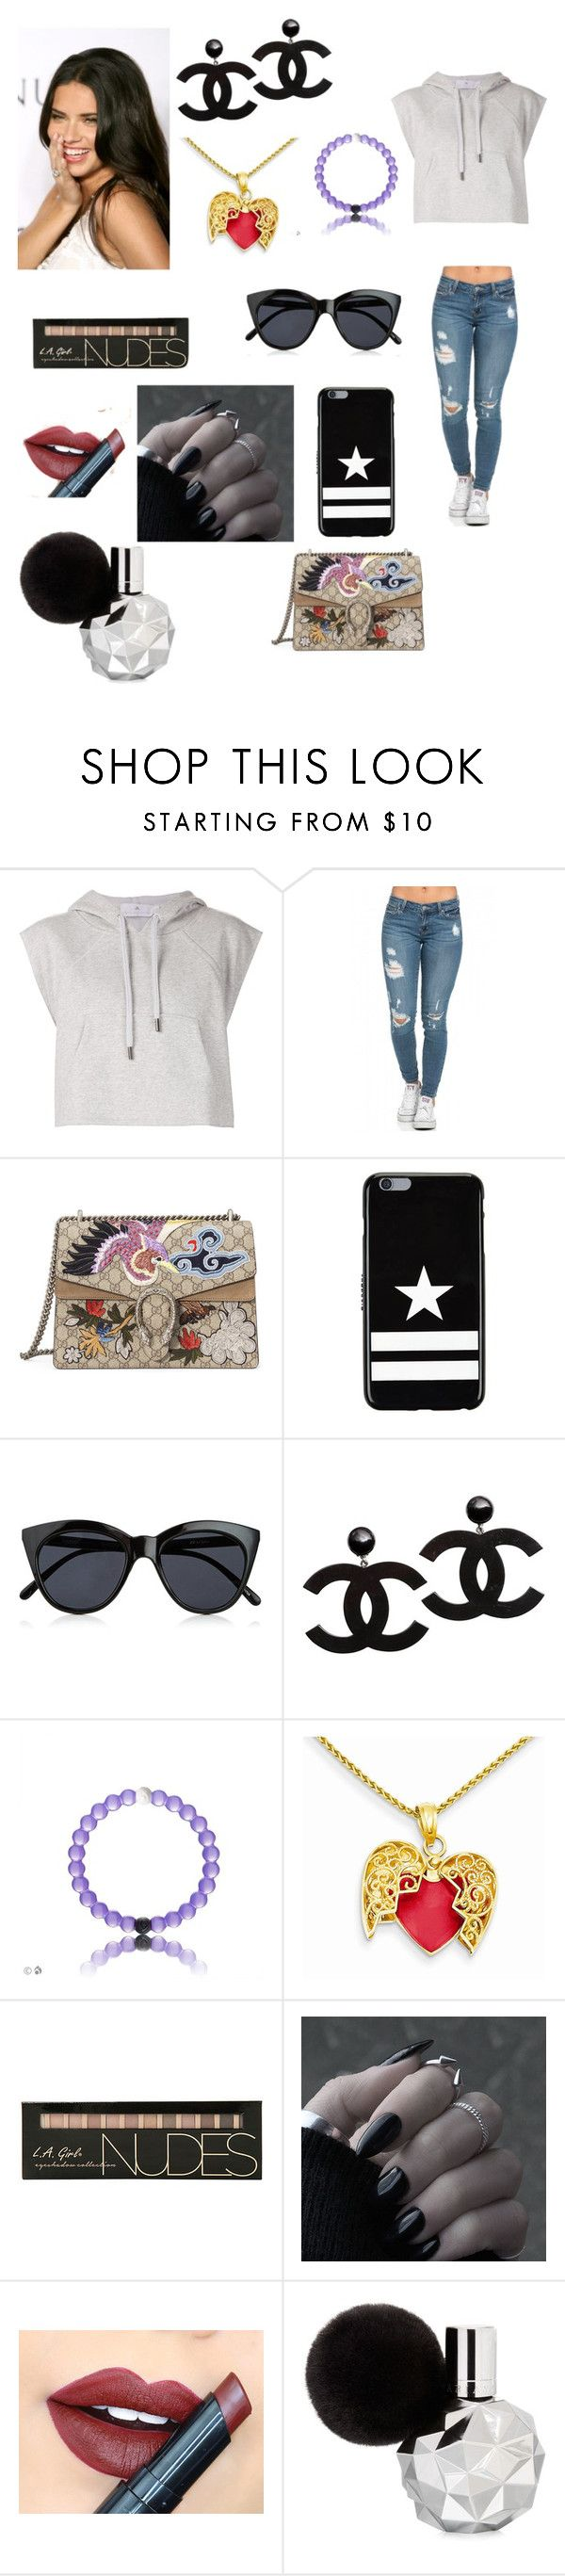 """""""Laura's outfit day in Lima, Peru"""" by onedirectionforever1297 on Polyvore featuring adidas, Gucci, Givenchy, Le Specs and Fiebiger"""